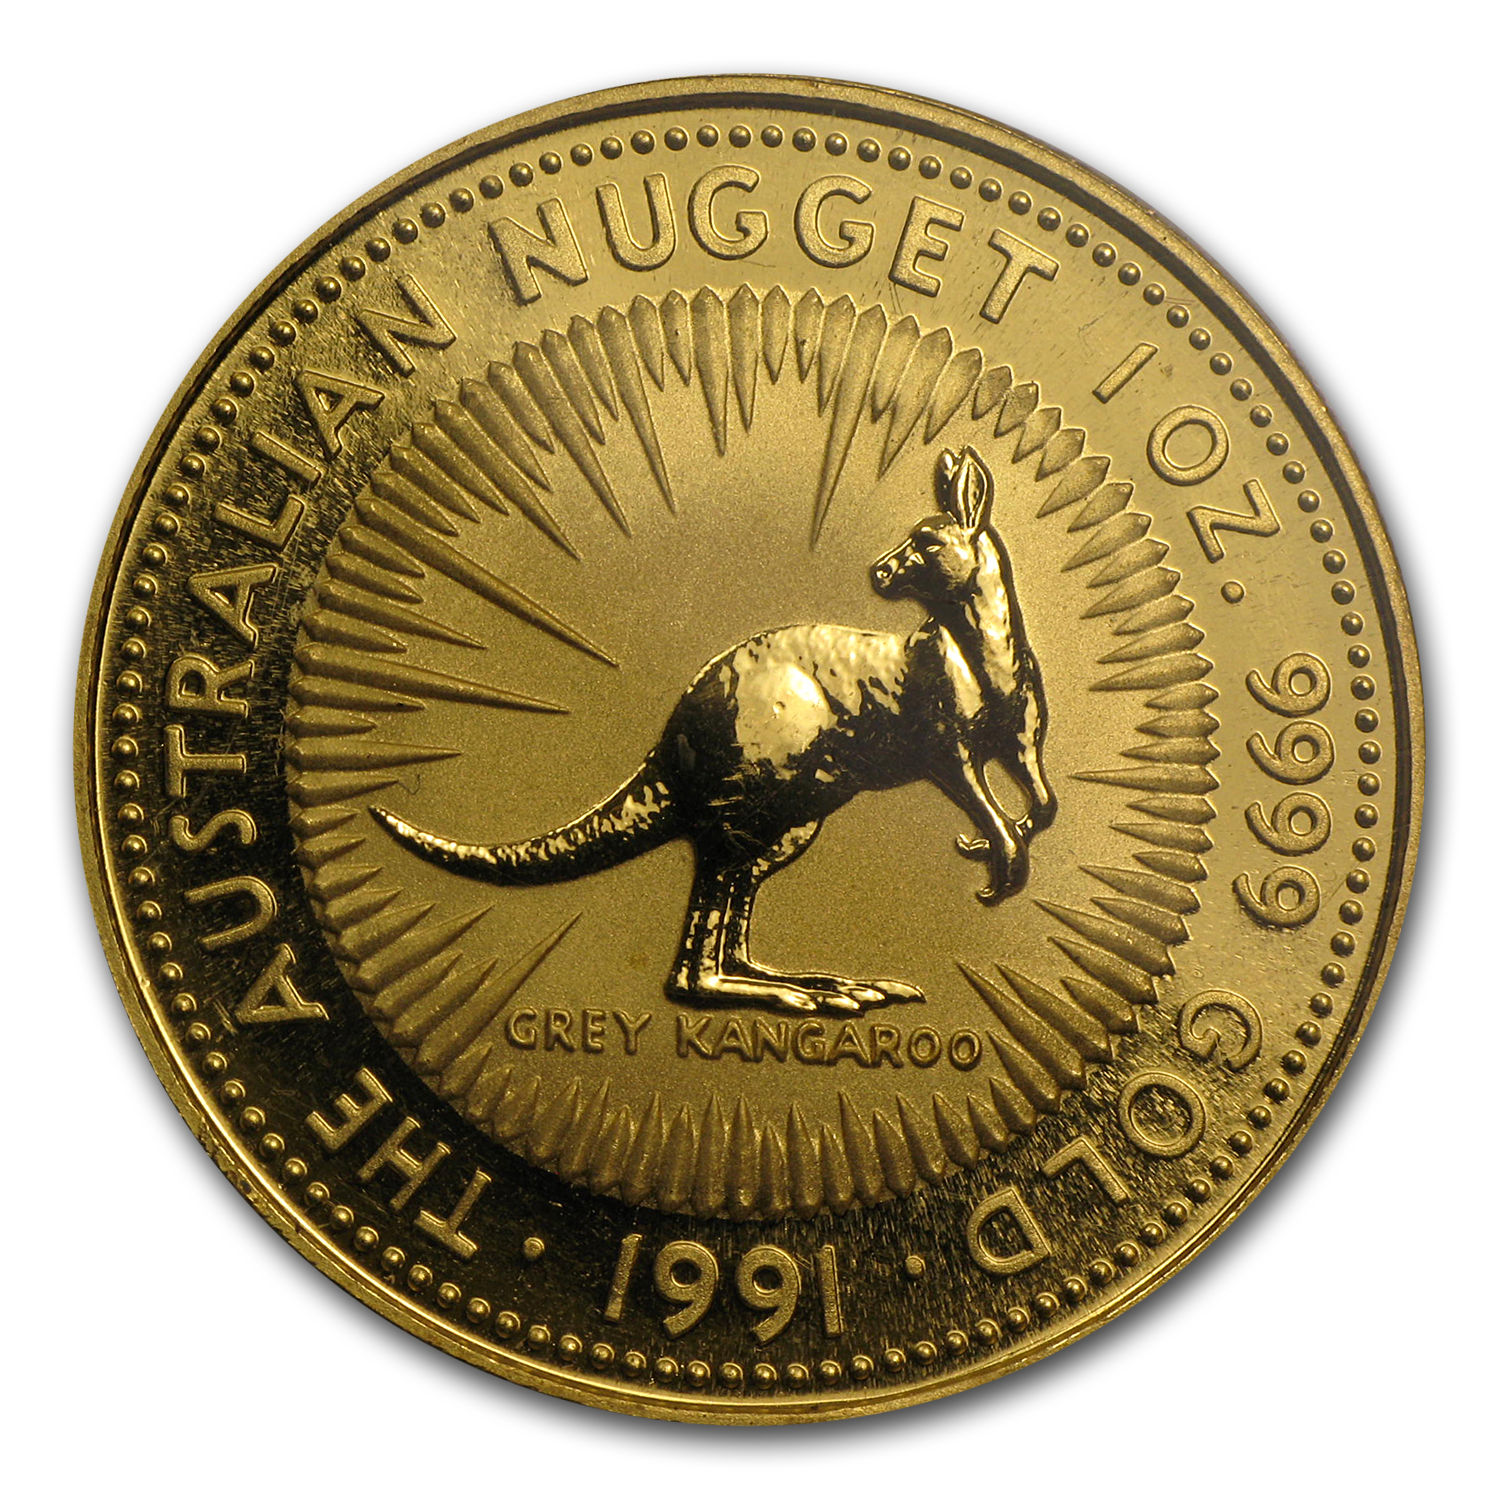 1991 1 oz Australian Gold Nugget